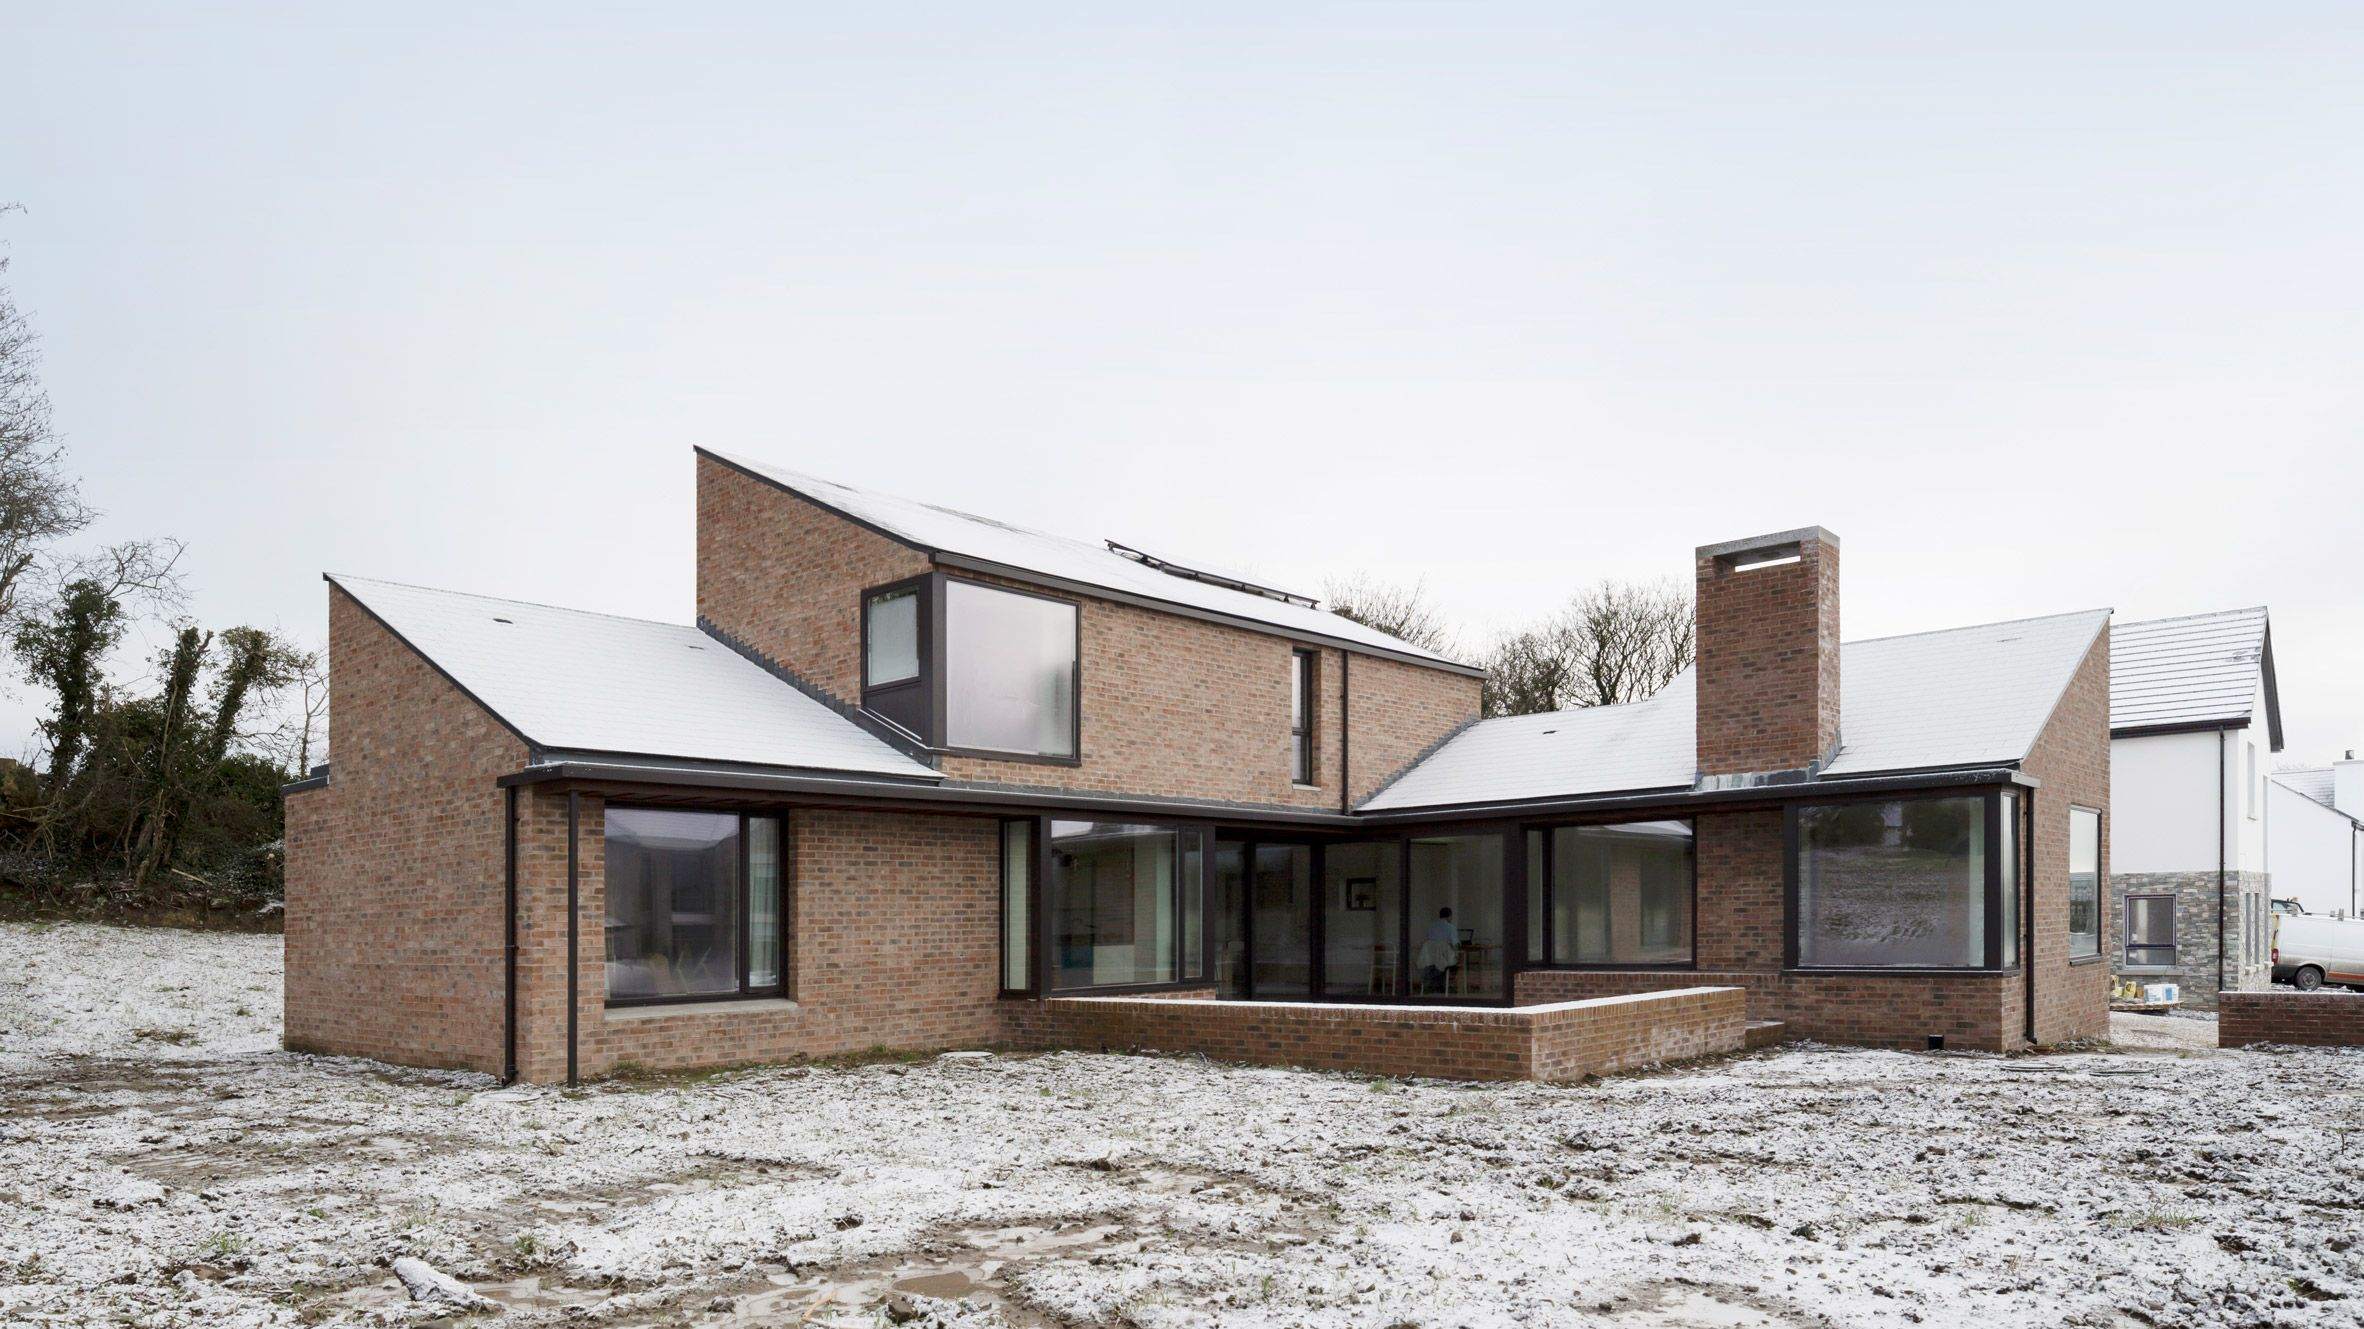 Scullion Architects Has Built An L Shaped Brick House With Sloping Roofs On The Outskirts Of A Seaside Village Near Modern Brick House Brick Architecture House